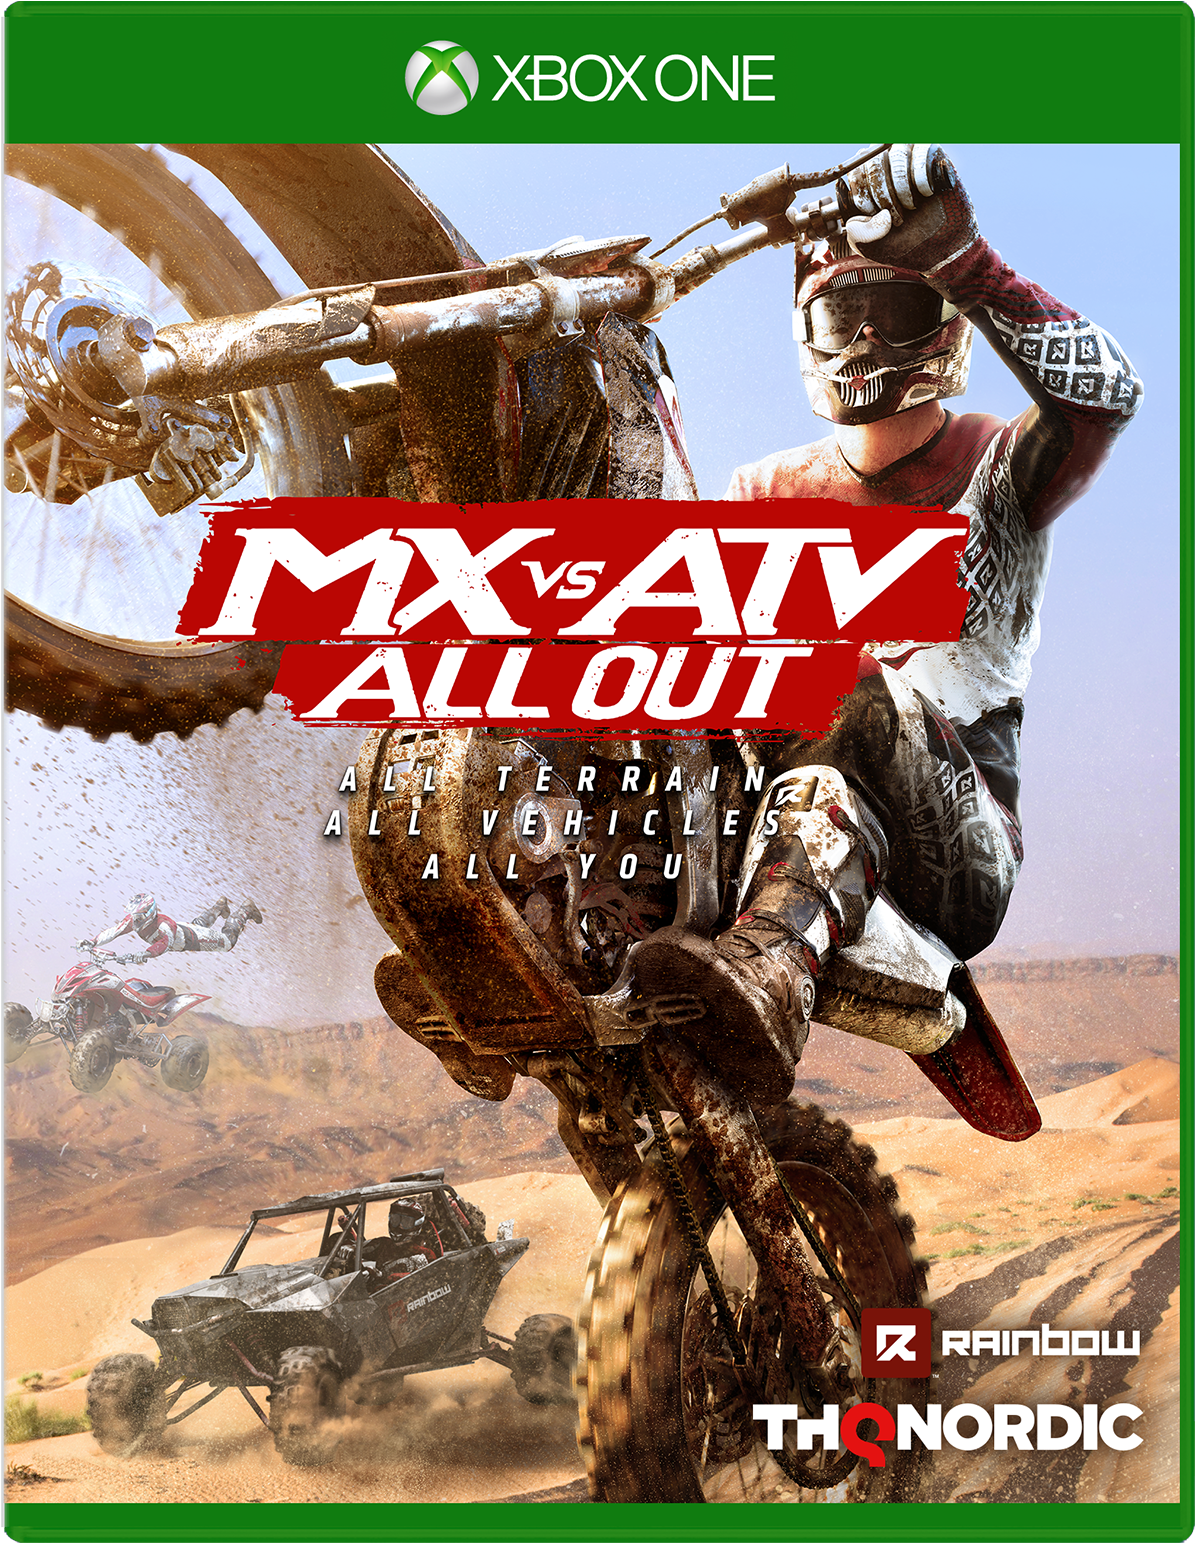 Nordic MX vs. ATV: All Out for Xbox One